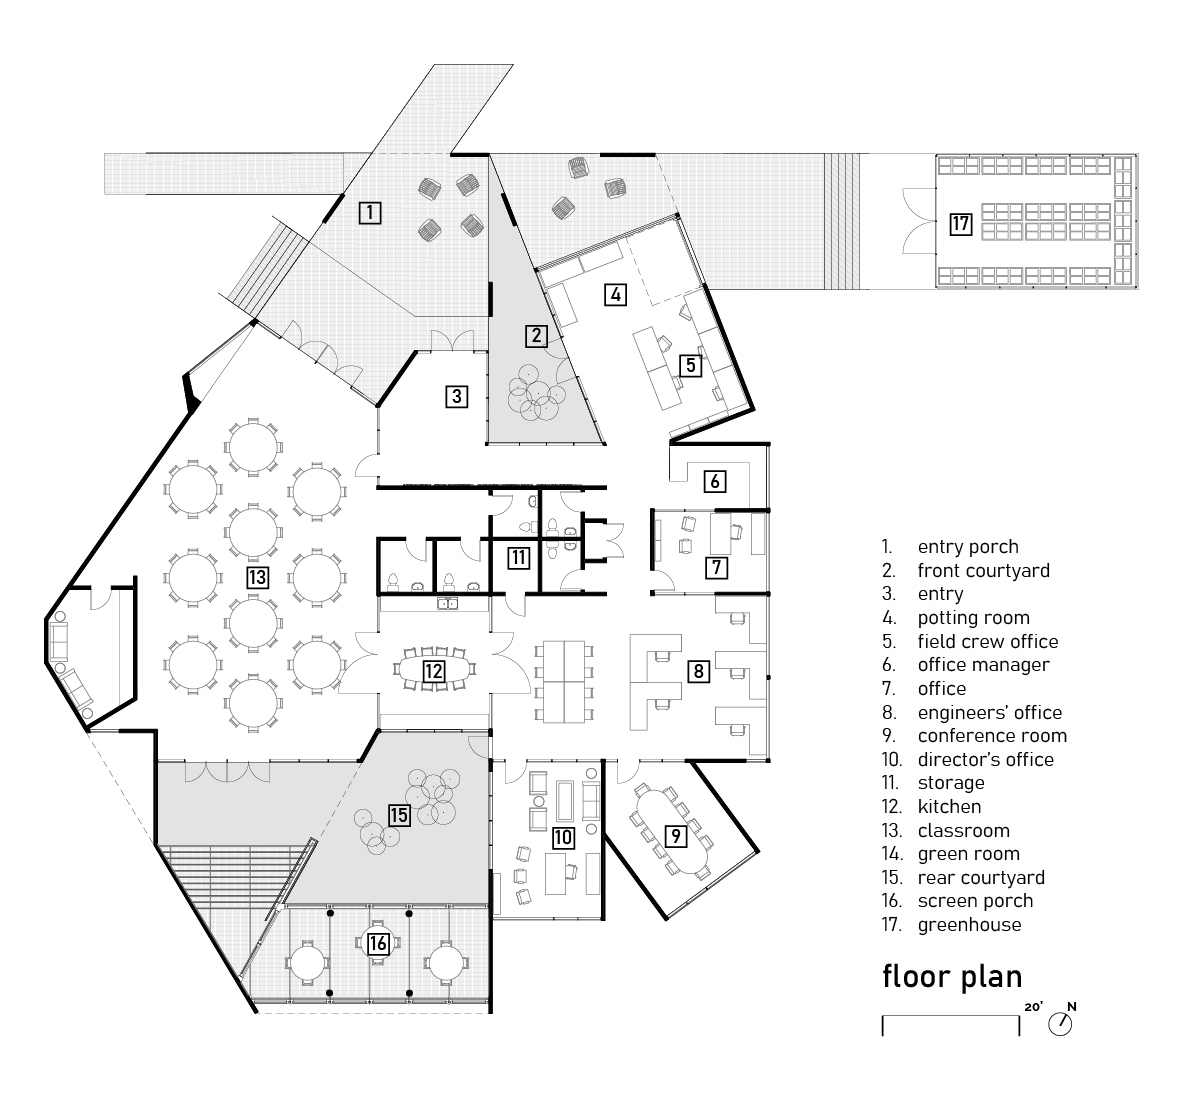 Courtyards align in a seam that connects yet distinguishes work and public education functions. University of Arkansas Community Design Center}